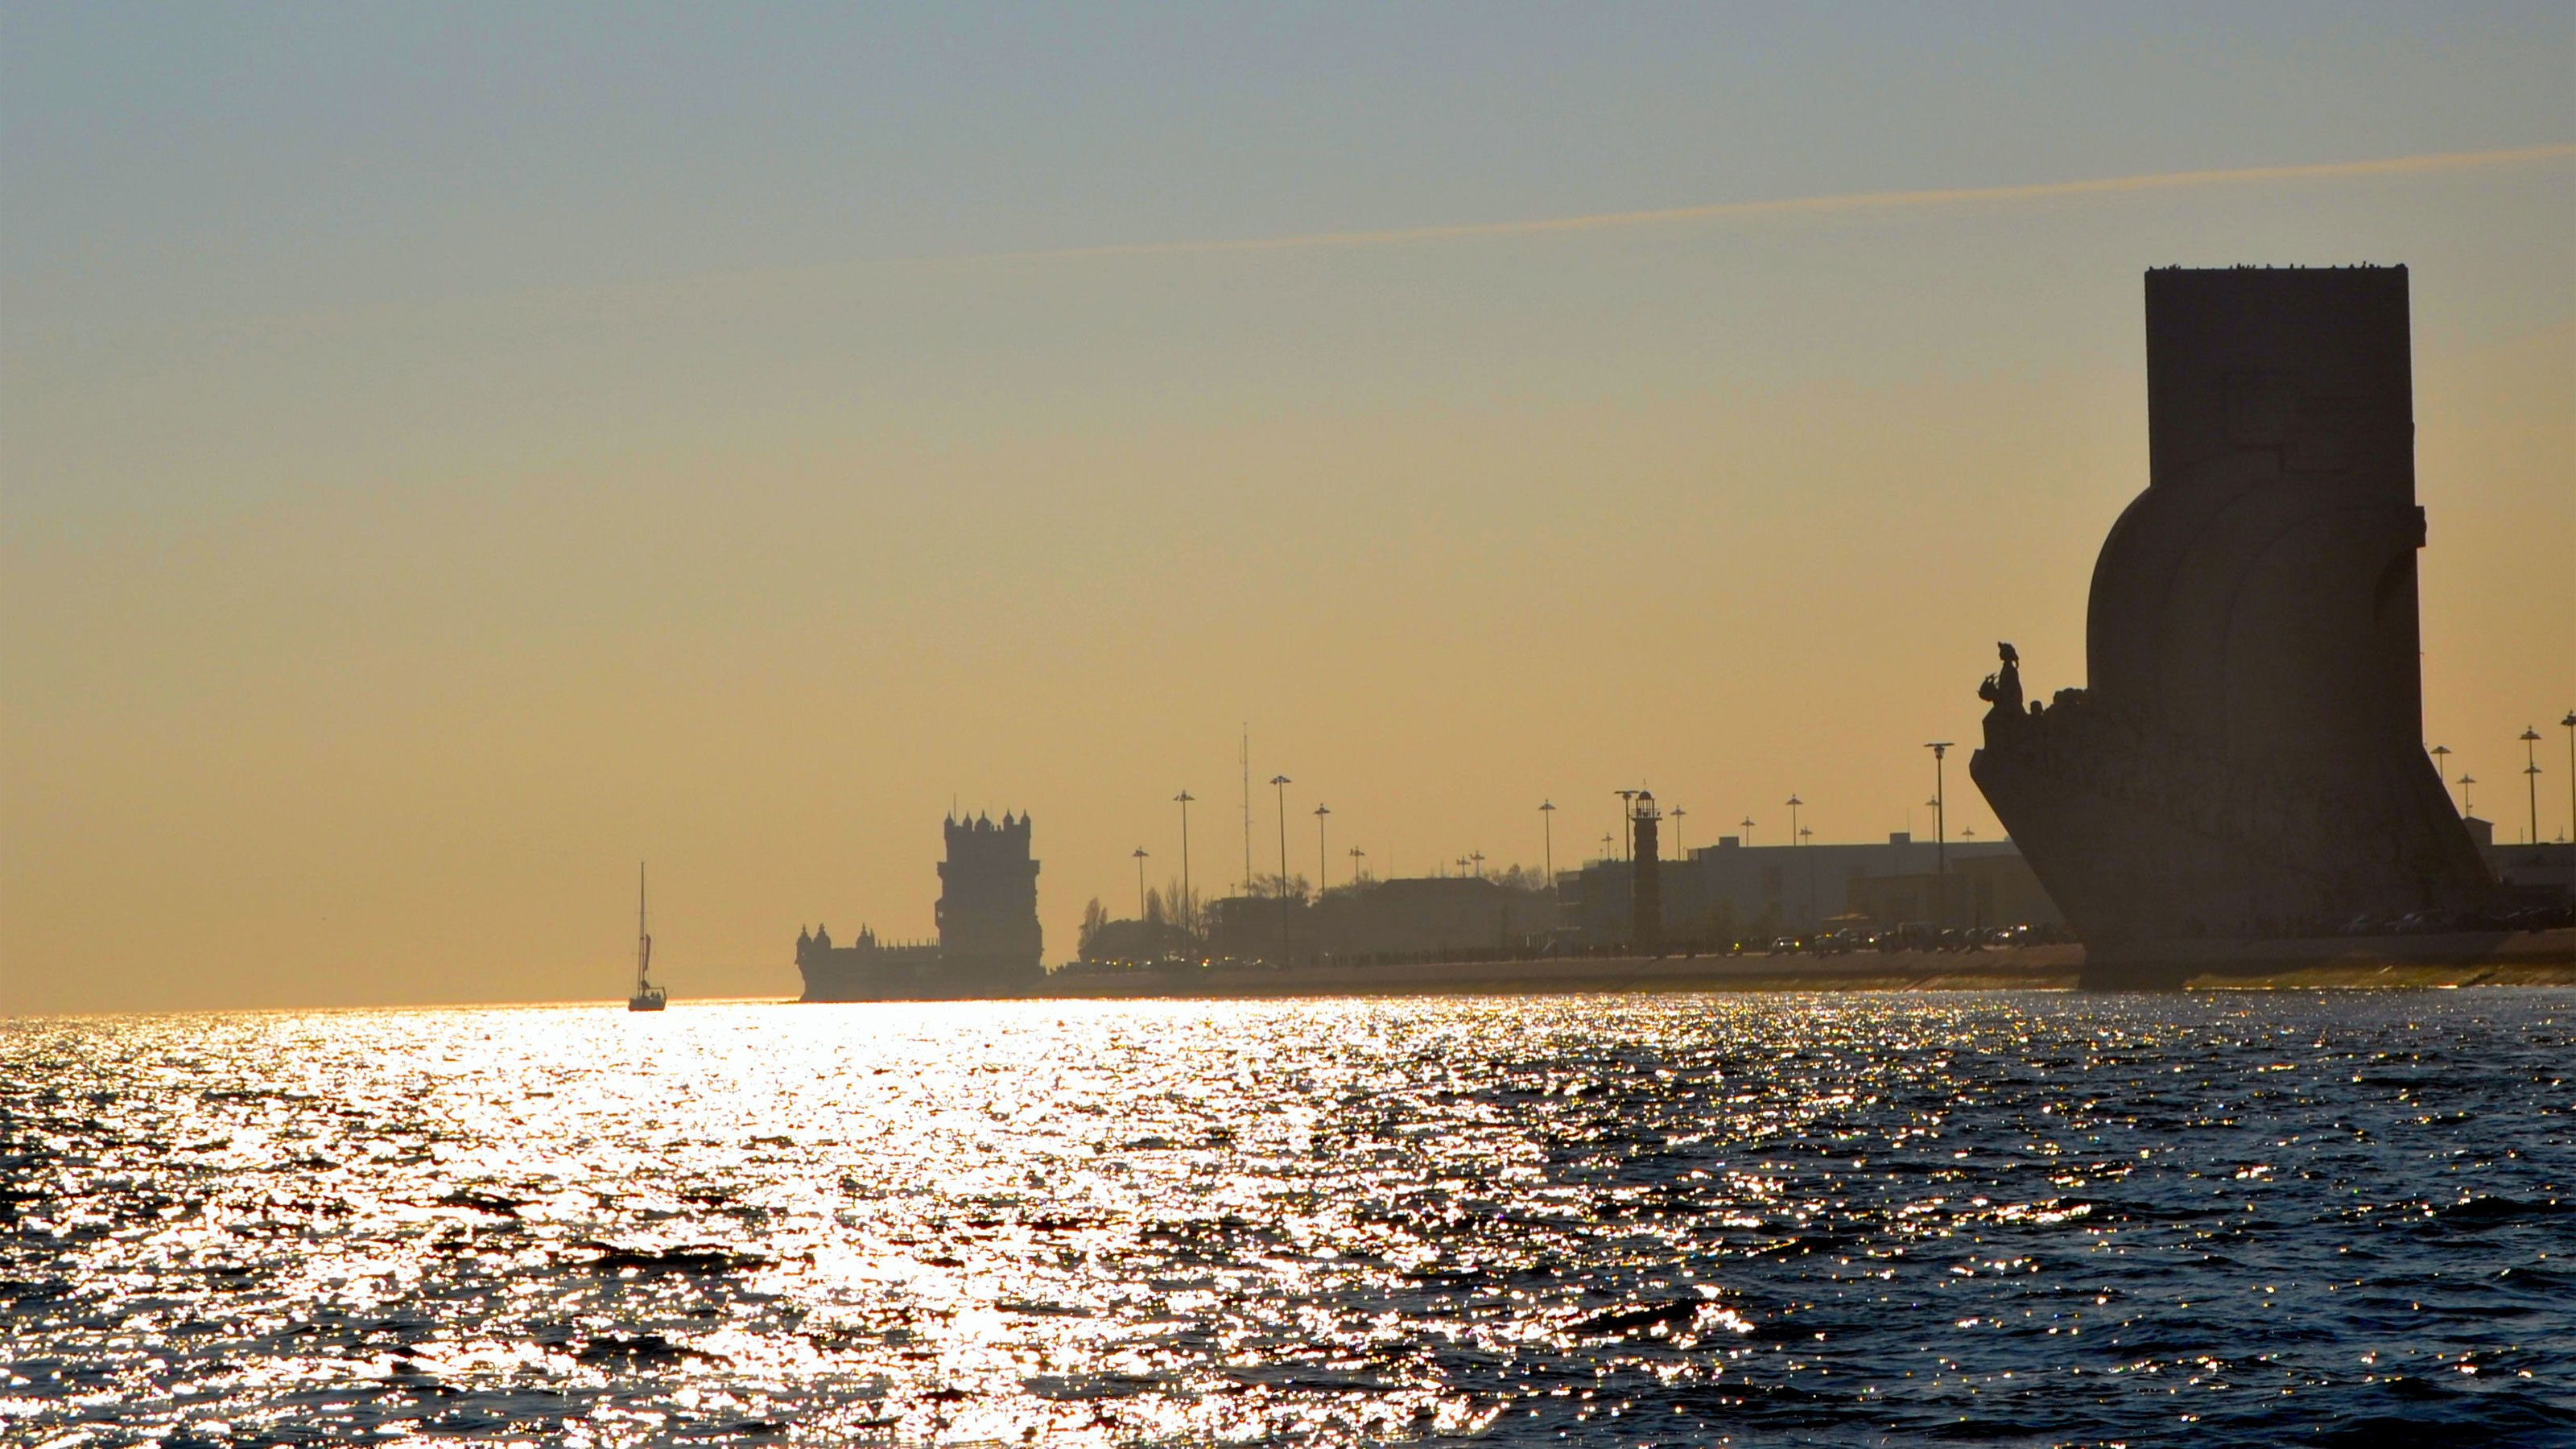 Silhouettes of the Monument to the Discoveries and Belem Tower on the Tagus RIver in Lisbon